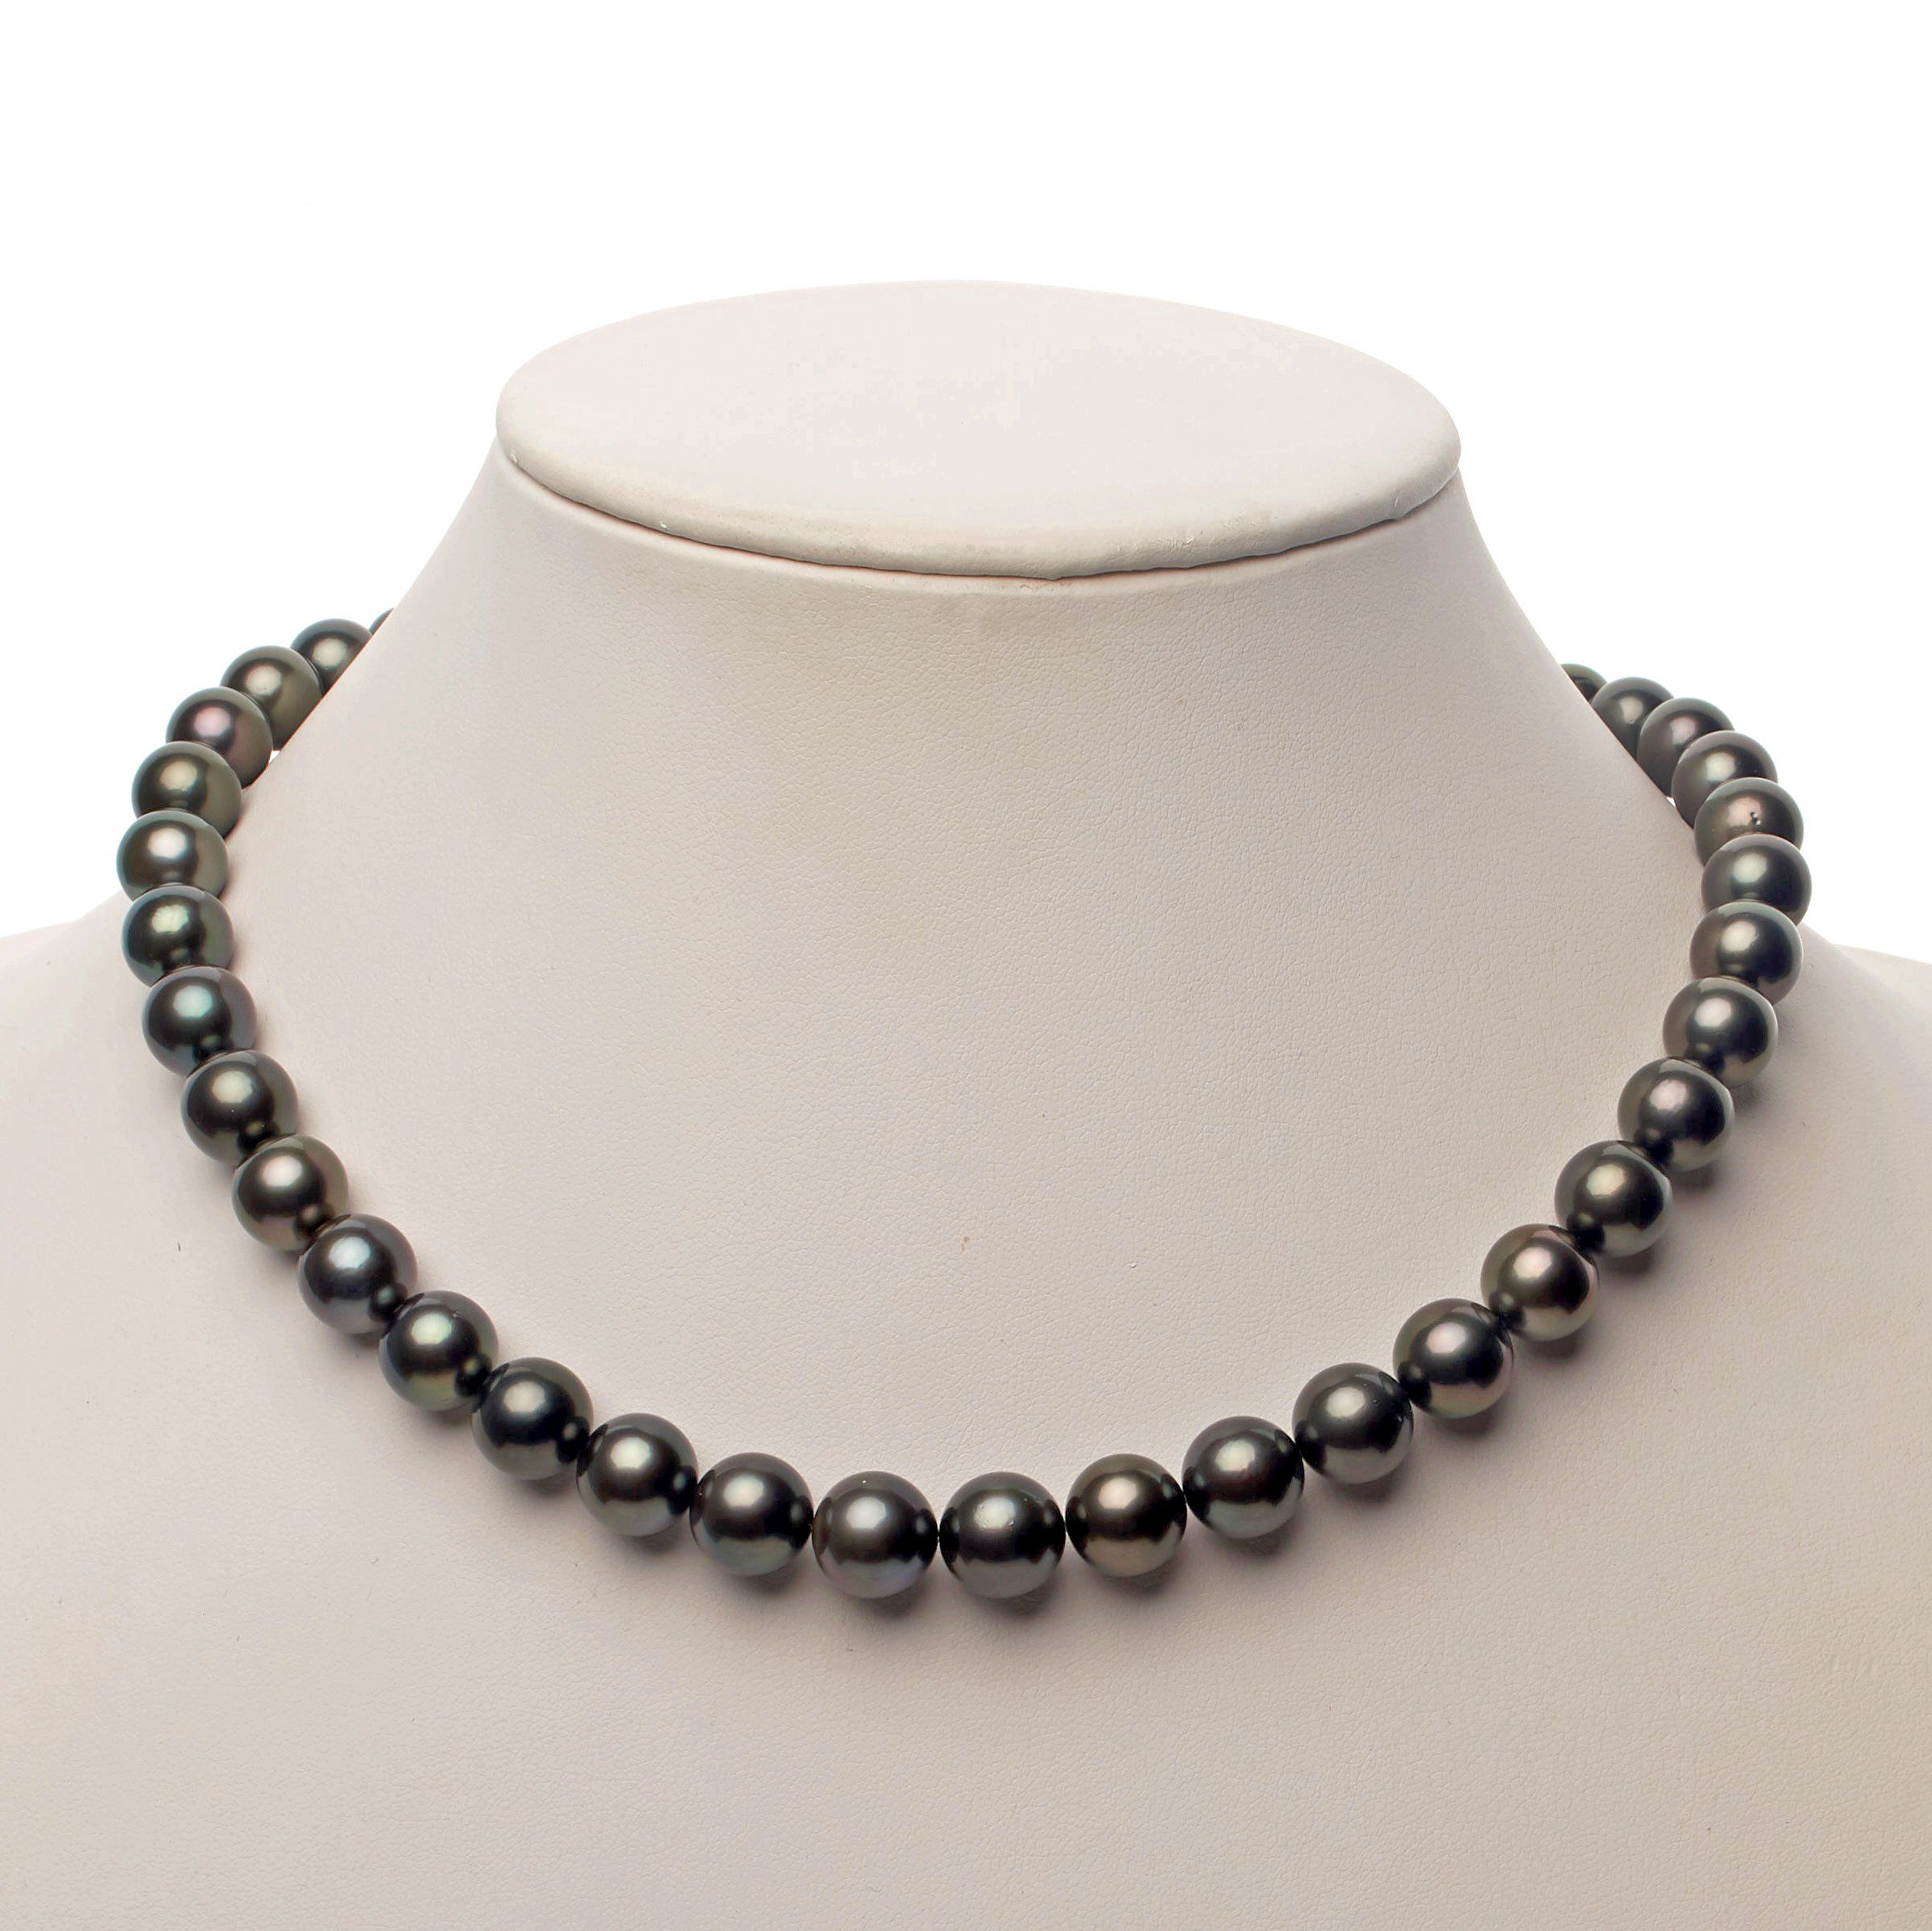 9.1-11.2 mm AA+/AAA Tahitian Round Pearl Necklace